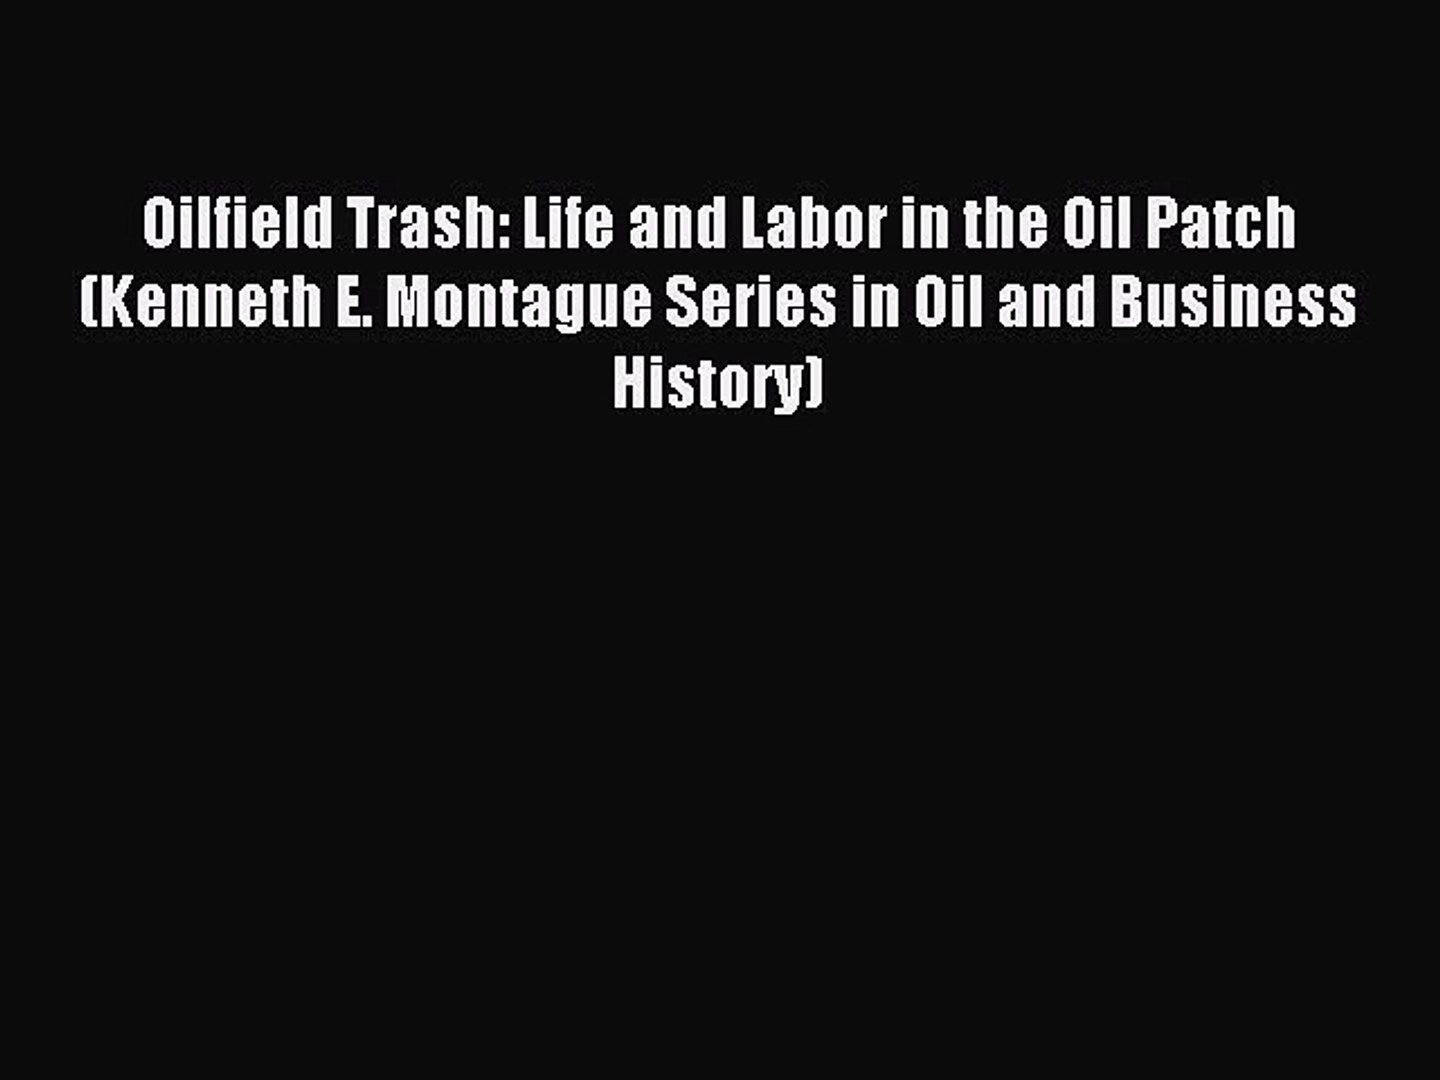 Read Oilfield Trash: Life and Labor in the Oil Patch (Kenneth E. Montague Series in Oil and